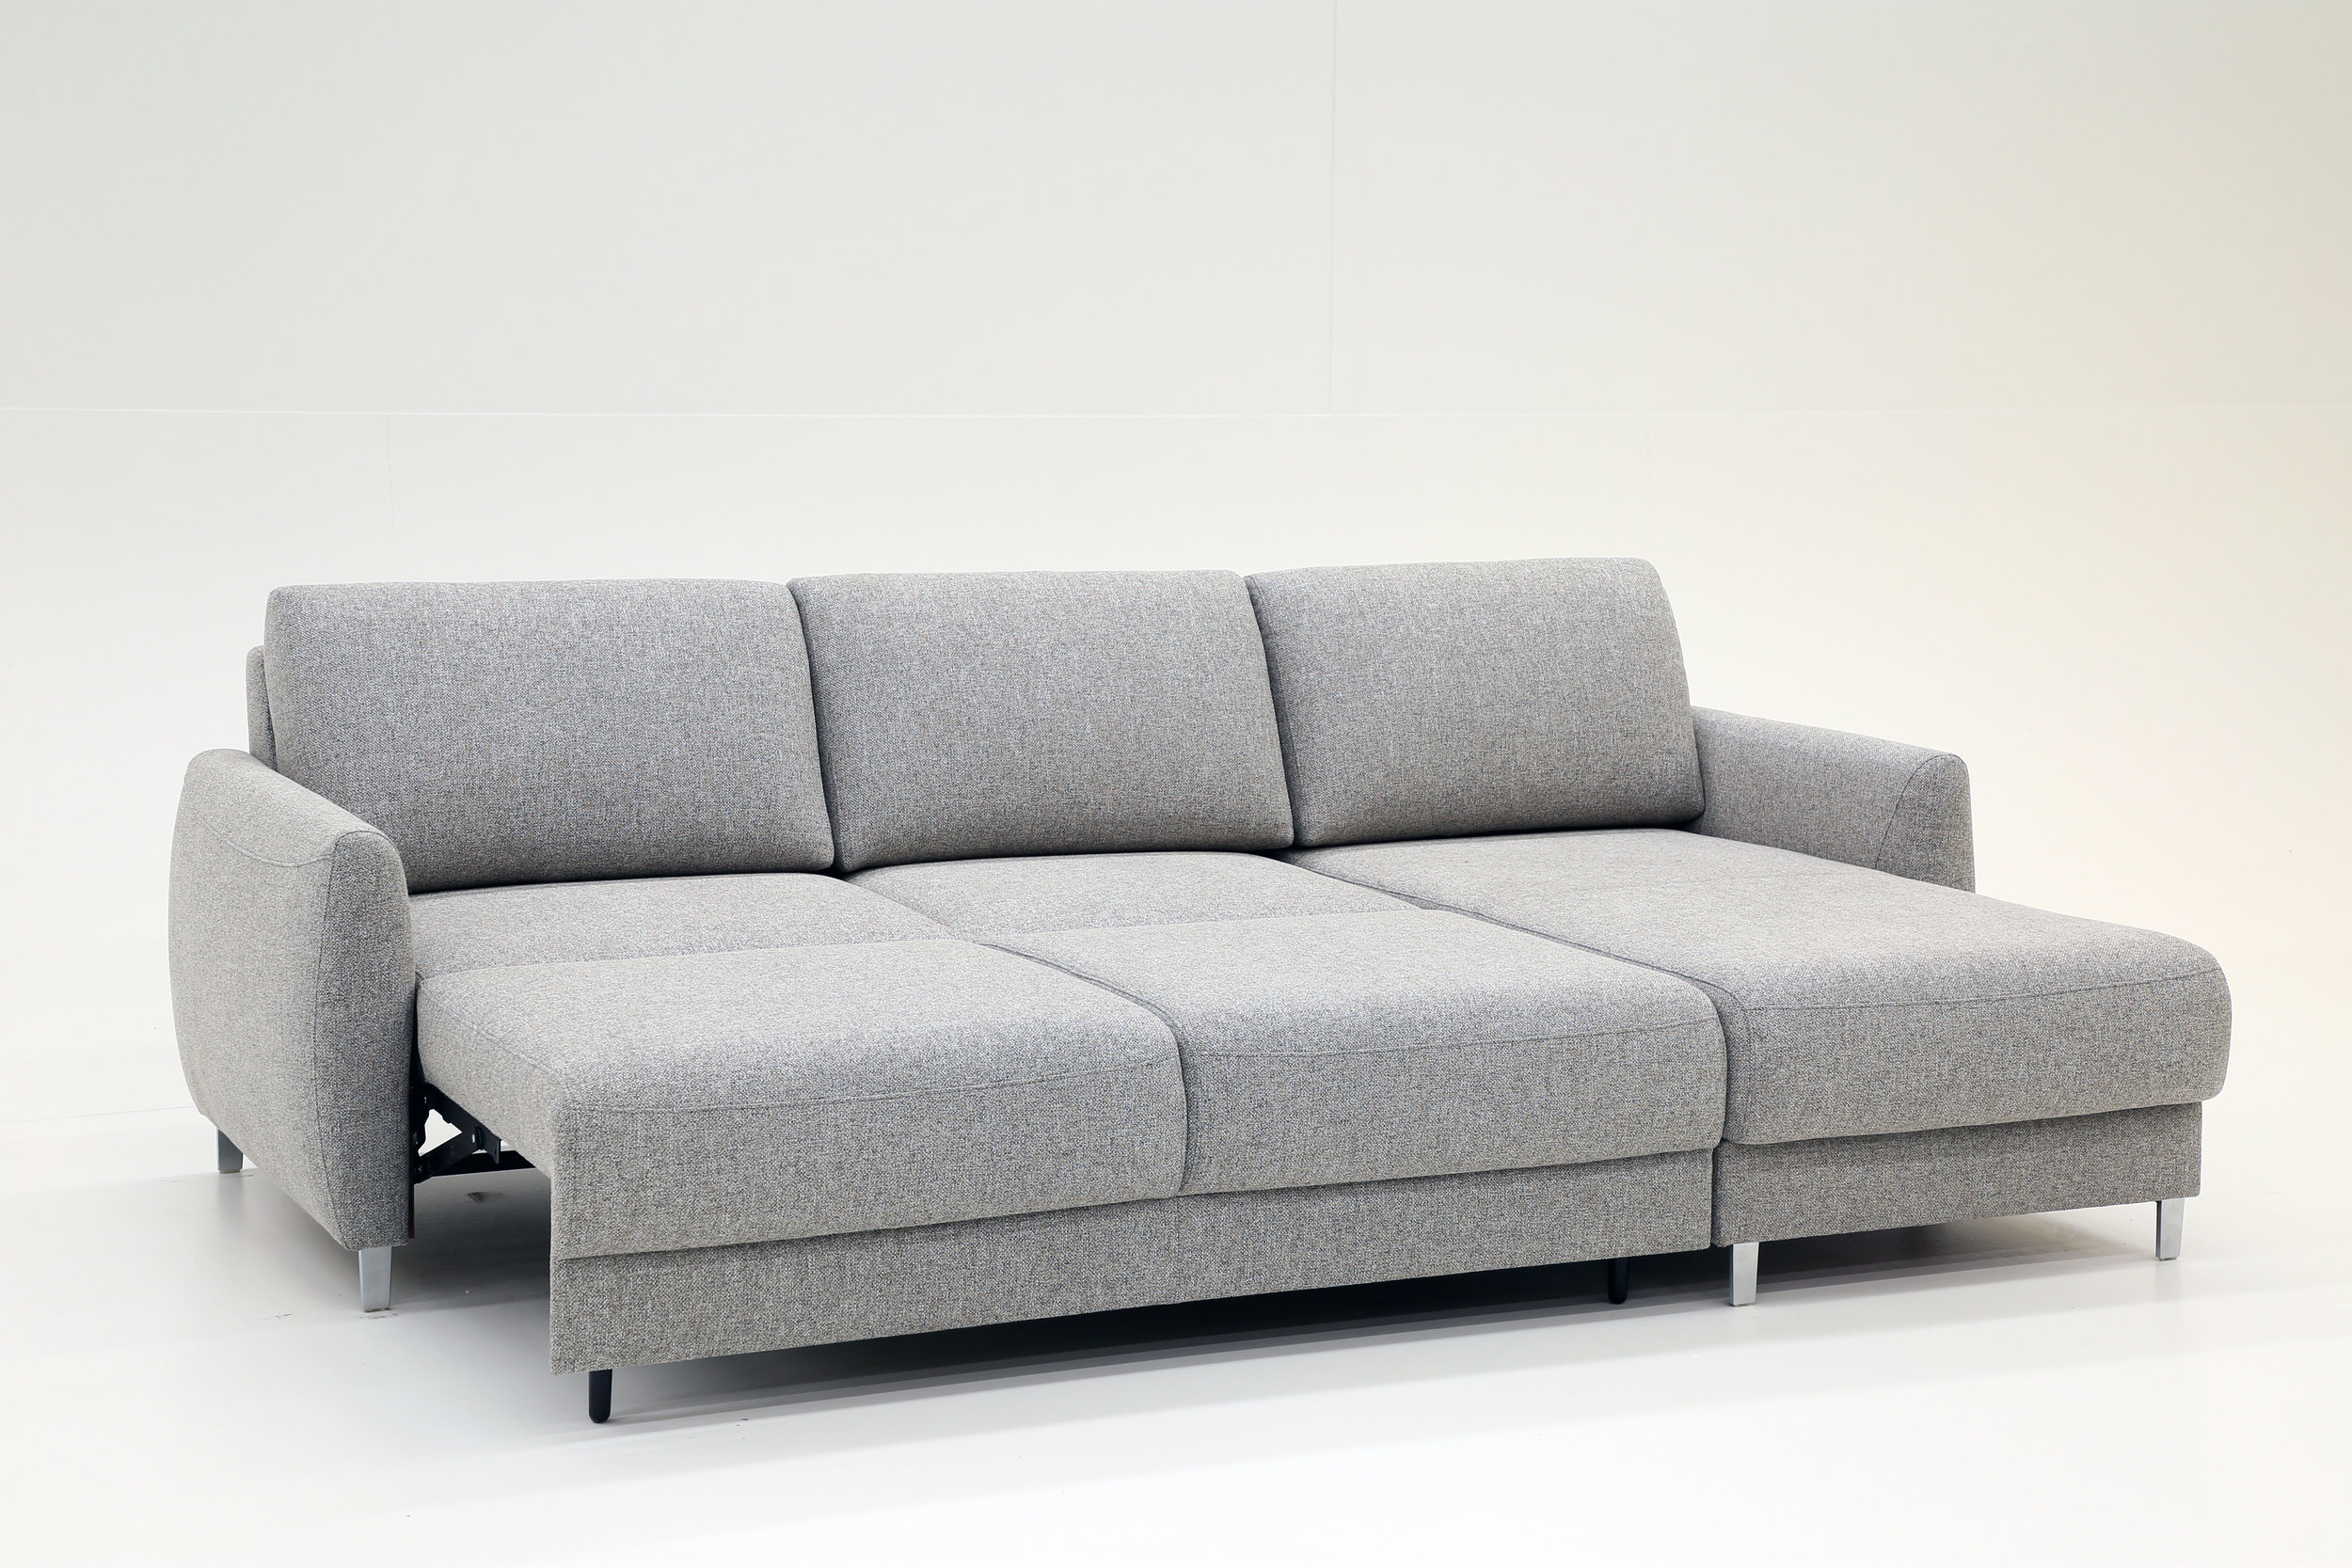 Delta Sectional Storage Sofa Bed Luonto M Collection NYC 5 JPG